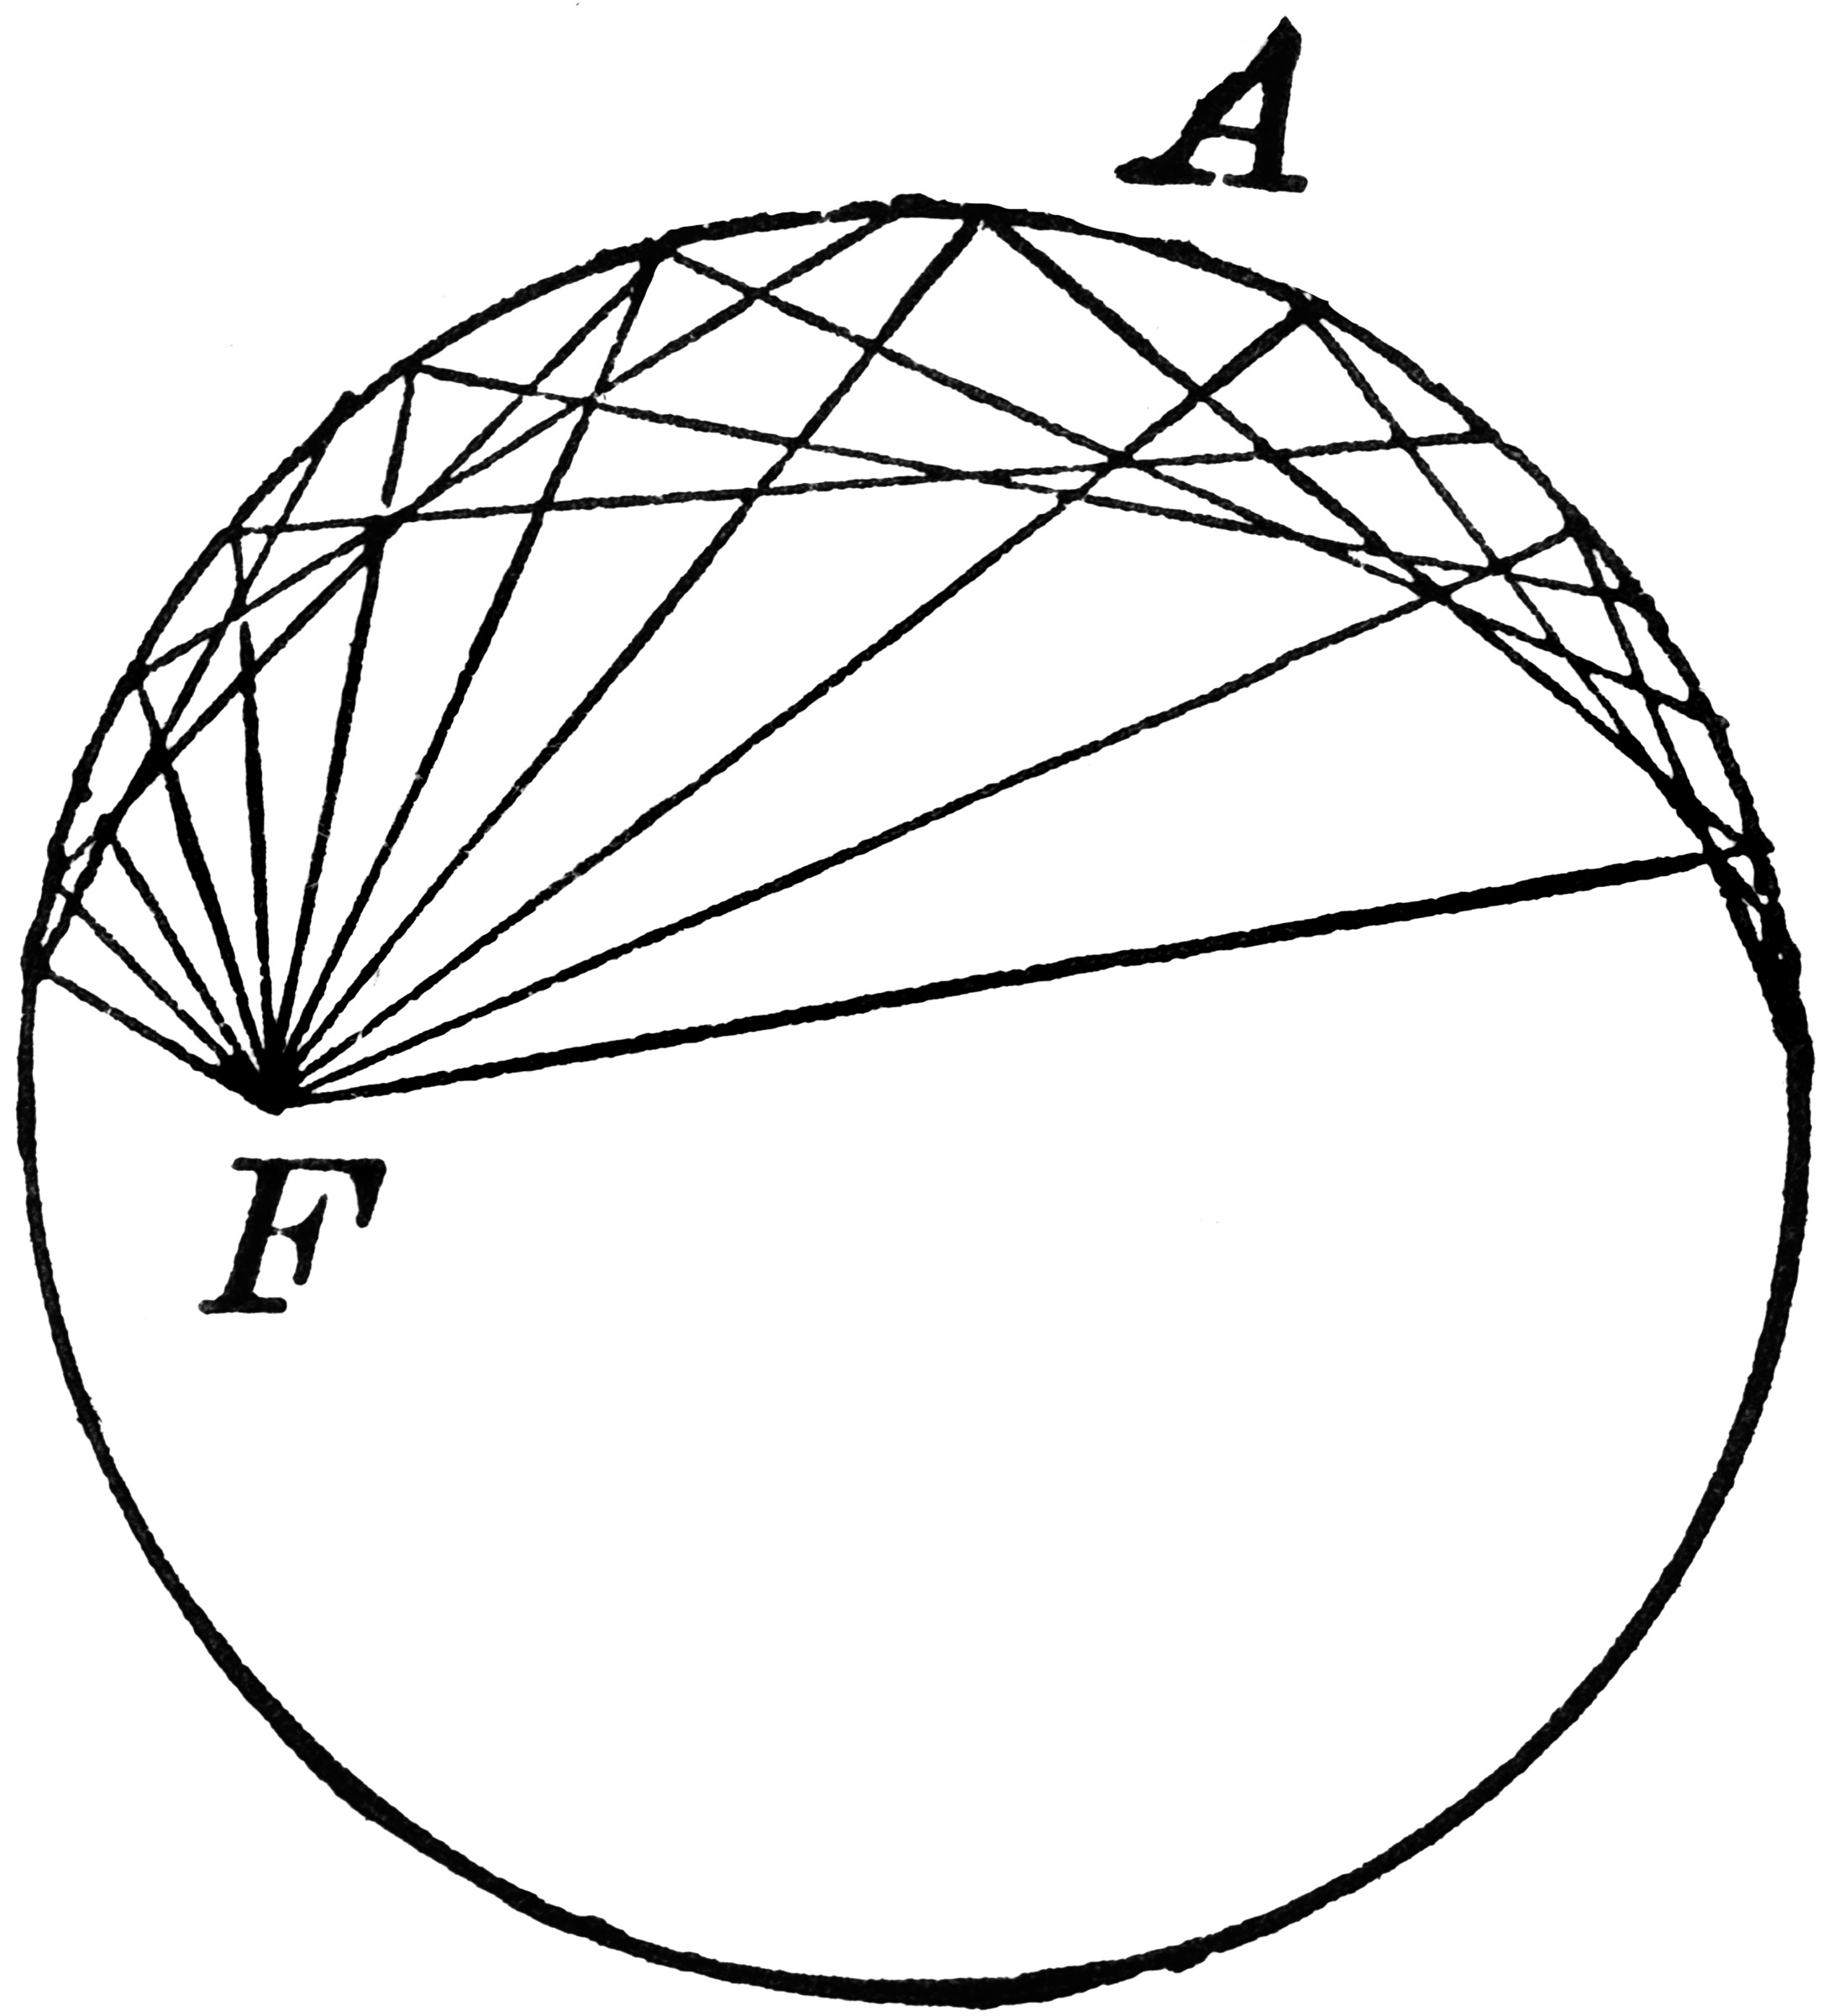 conic sections diagram led light circuit 12v focus in auxiliary circle of clipart etc